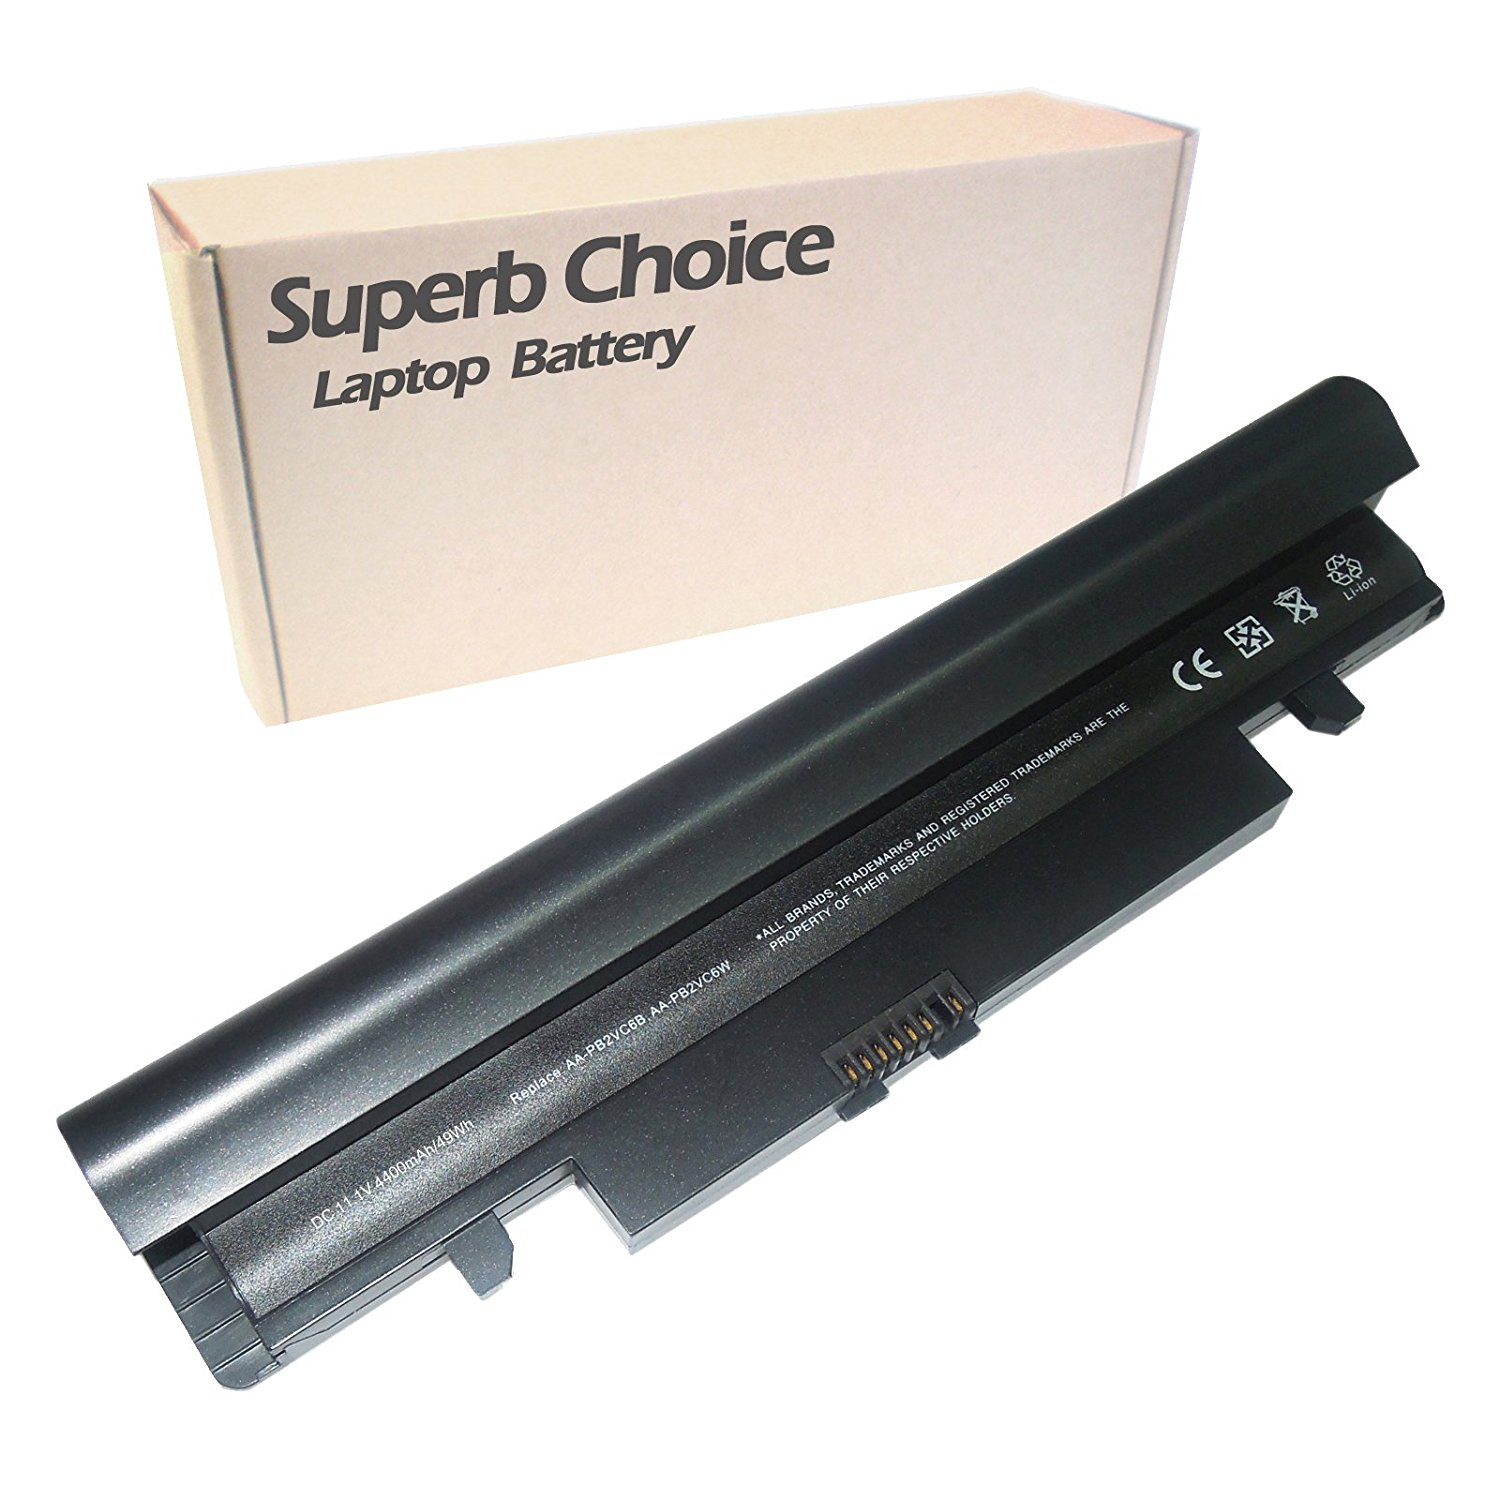 SAMSUNG NP-N150 PLUS Laptop Battery - Premium Superb Choice® 6-cell Li-ion Battery